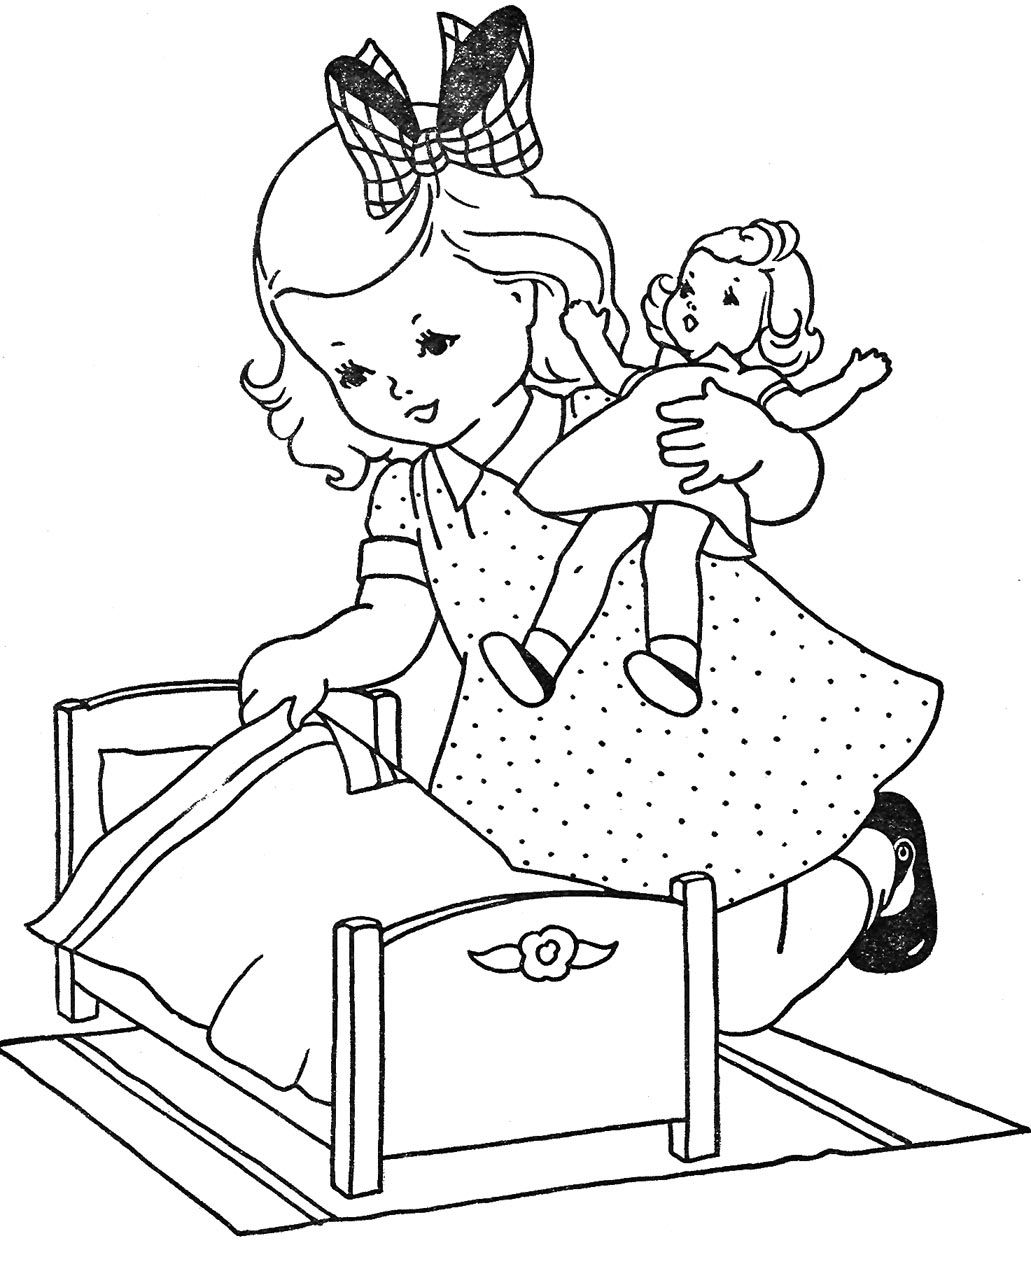 coloring worksheets for toddlers free printable tangled coloring pages for kids cool2bkids toddlers coloring for worksheets